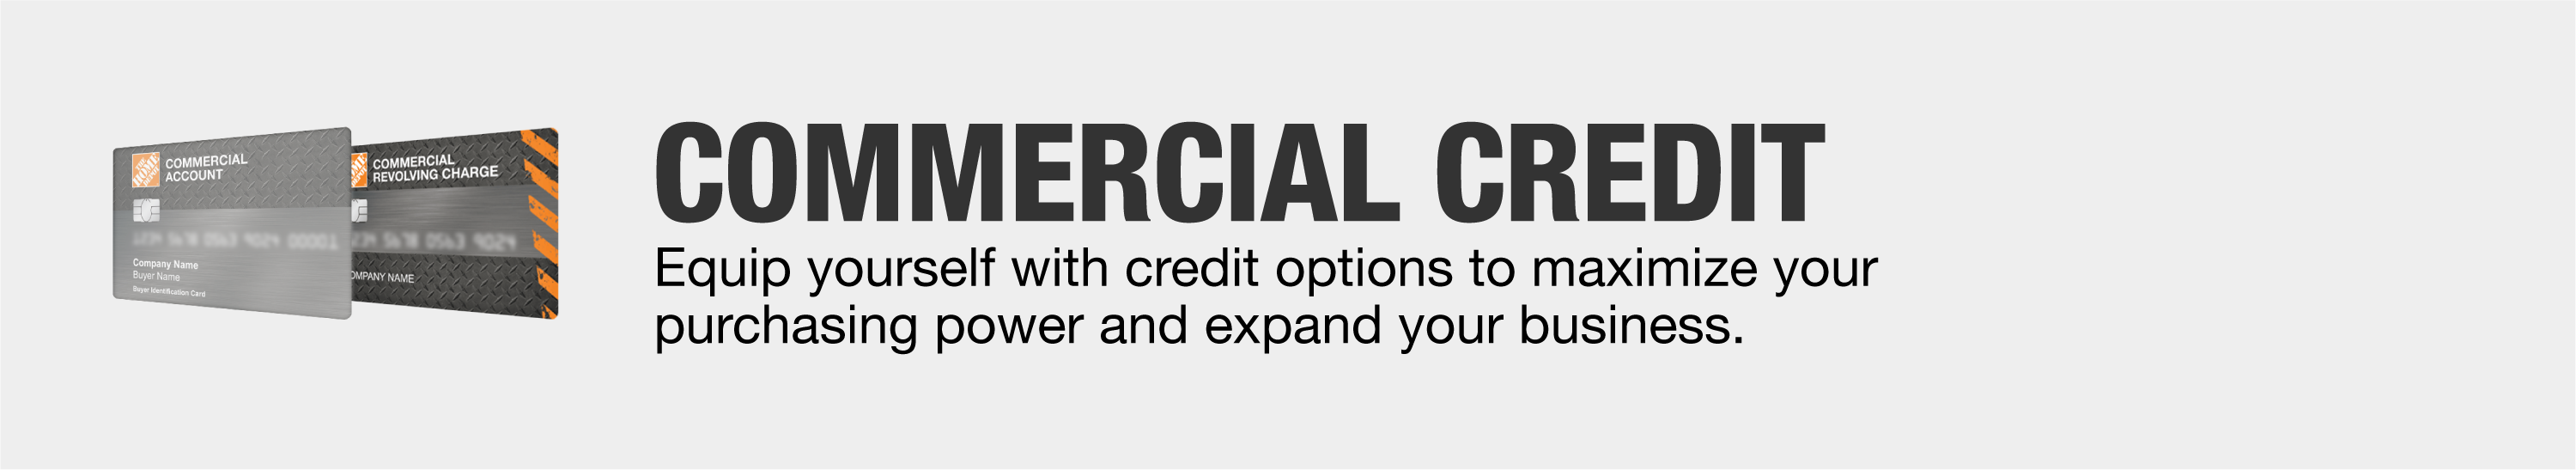 Commercial credit options to maximize your purchasing power